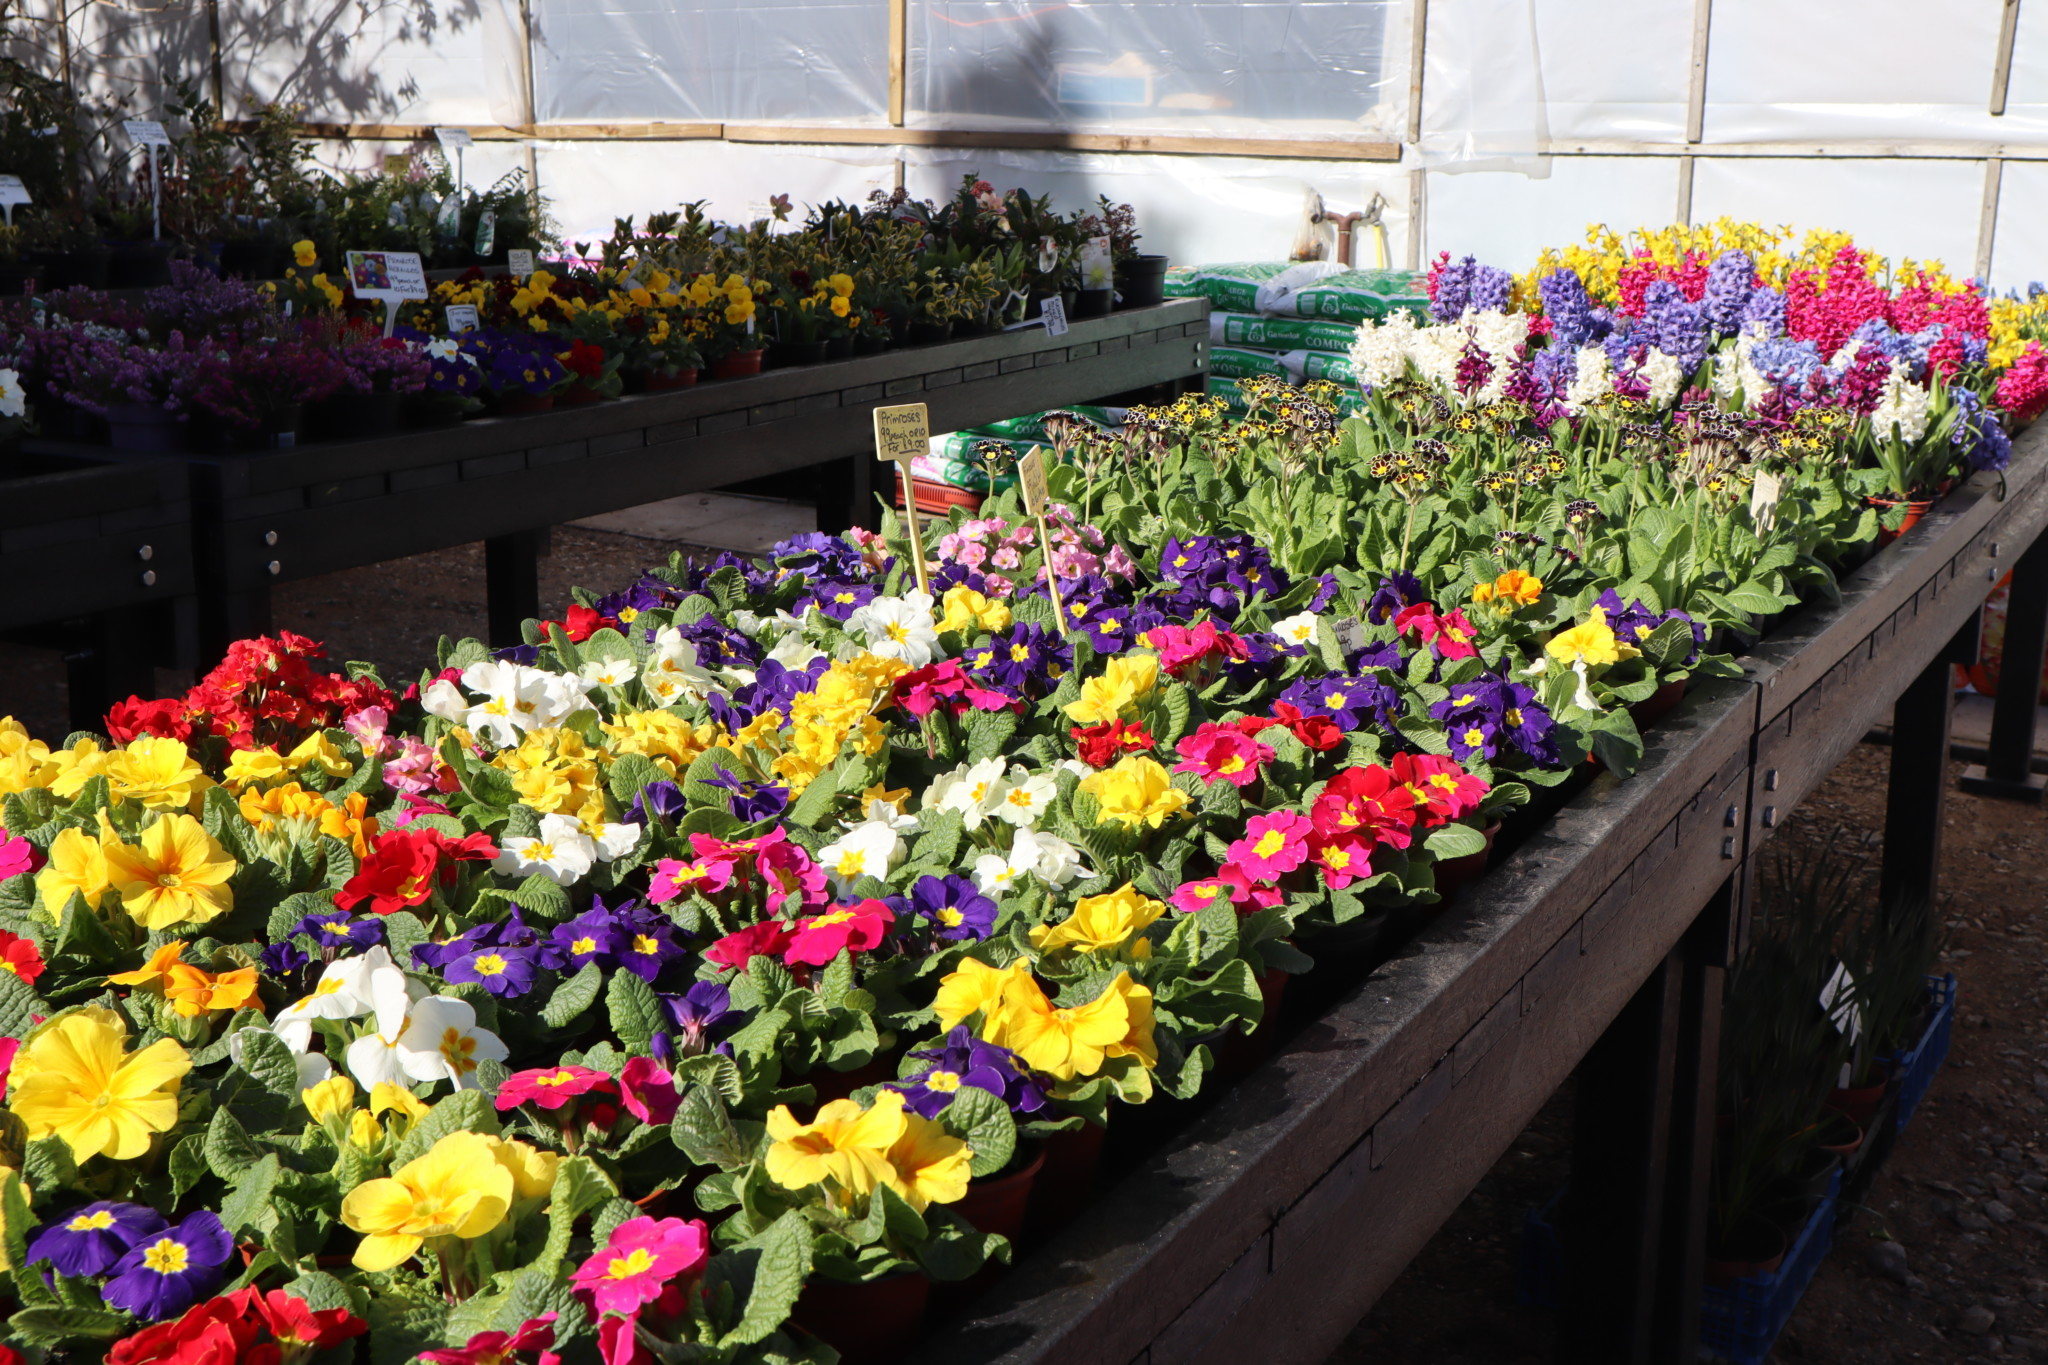 Colourful bedding plants displayed on recycled plastic tables at Greensleeves Nursery.